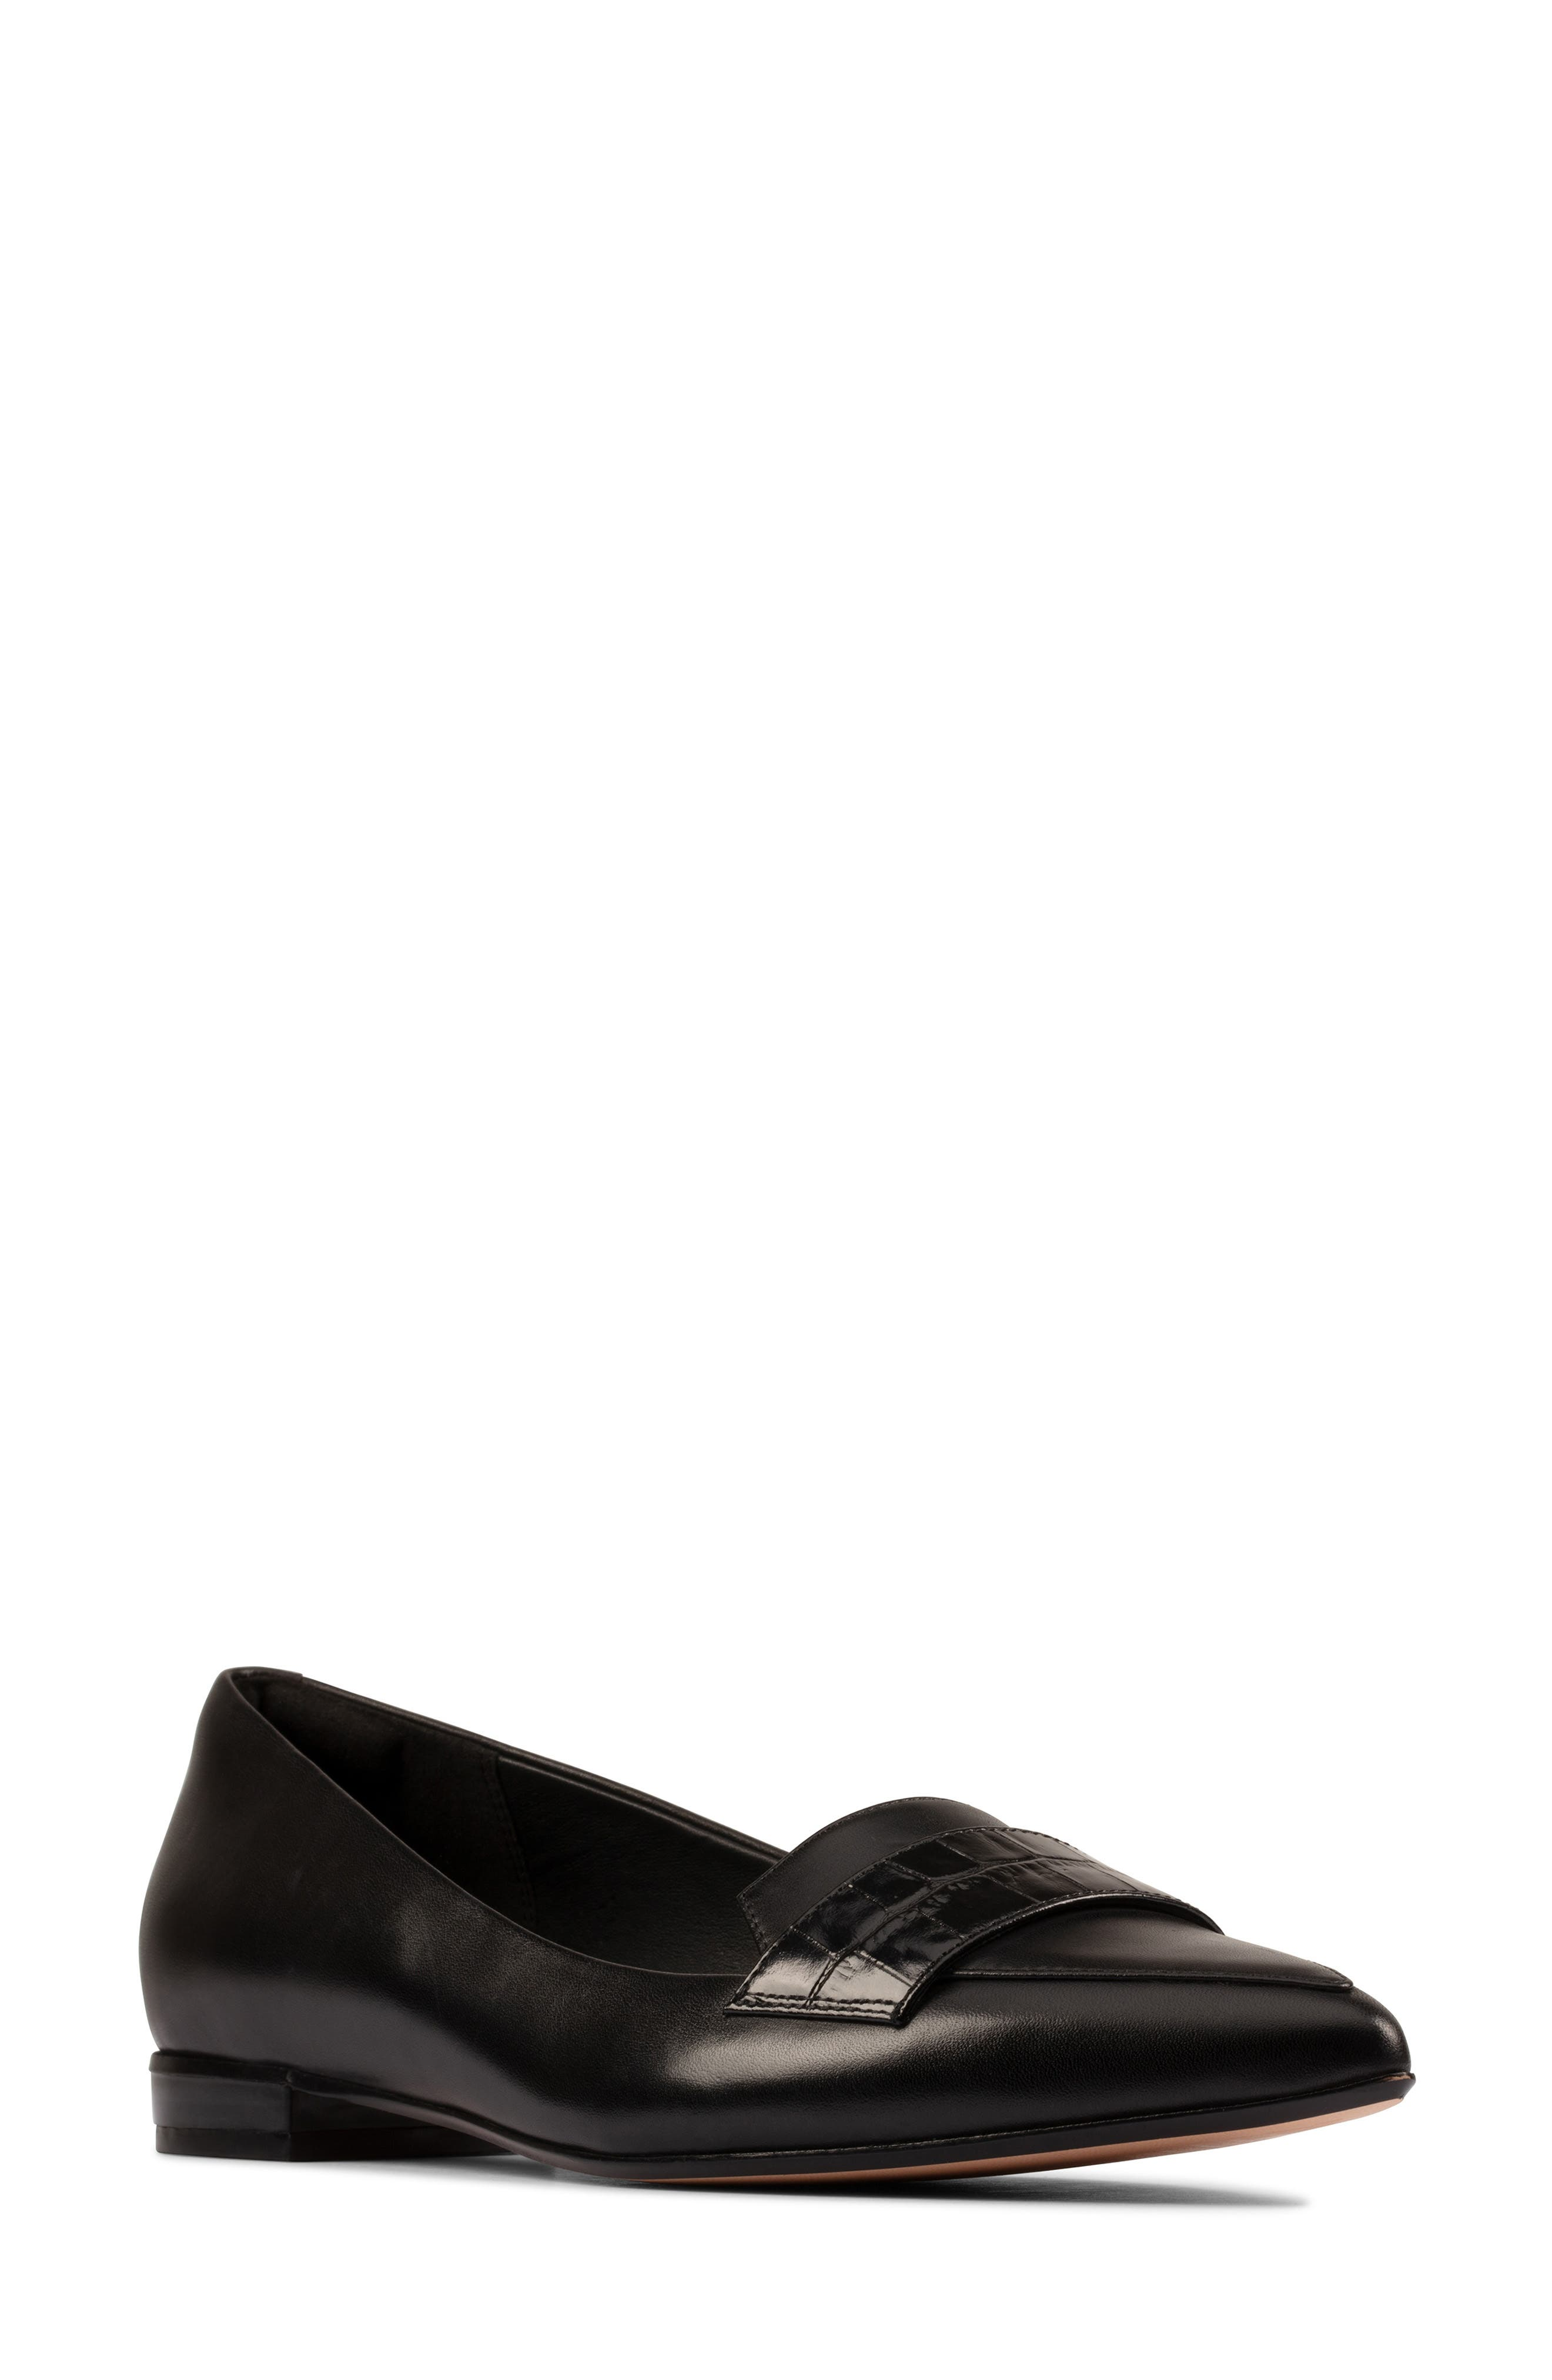 Women's Clarks Laina 15 Pointed Toe Loafer